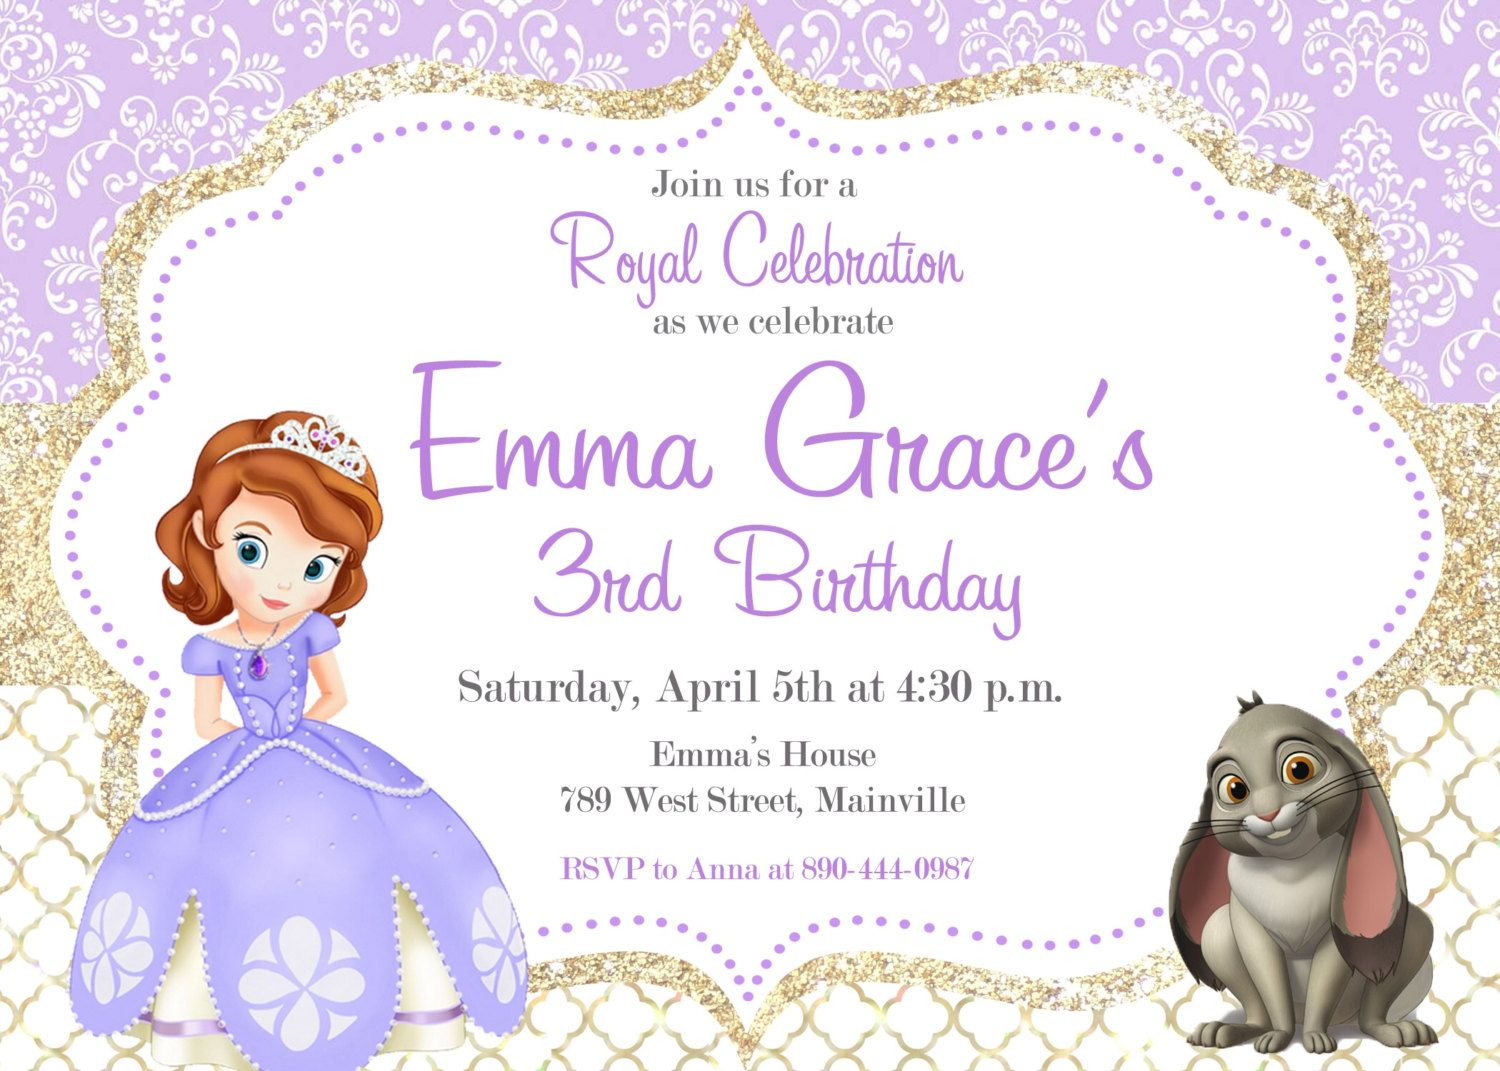 Sofia the first birthday party invitation by prettypaperpixels sofia the first birthday party invitation by prettypaperpixels stopboris Images